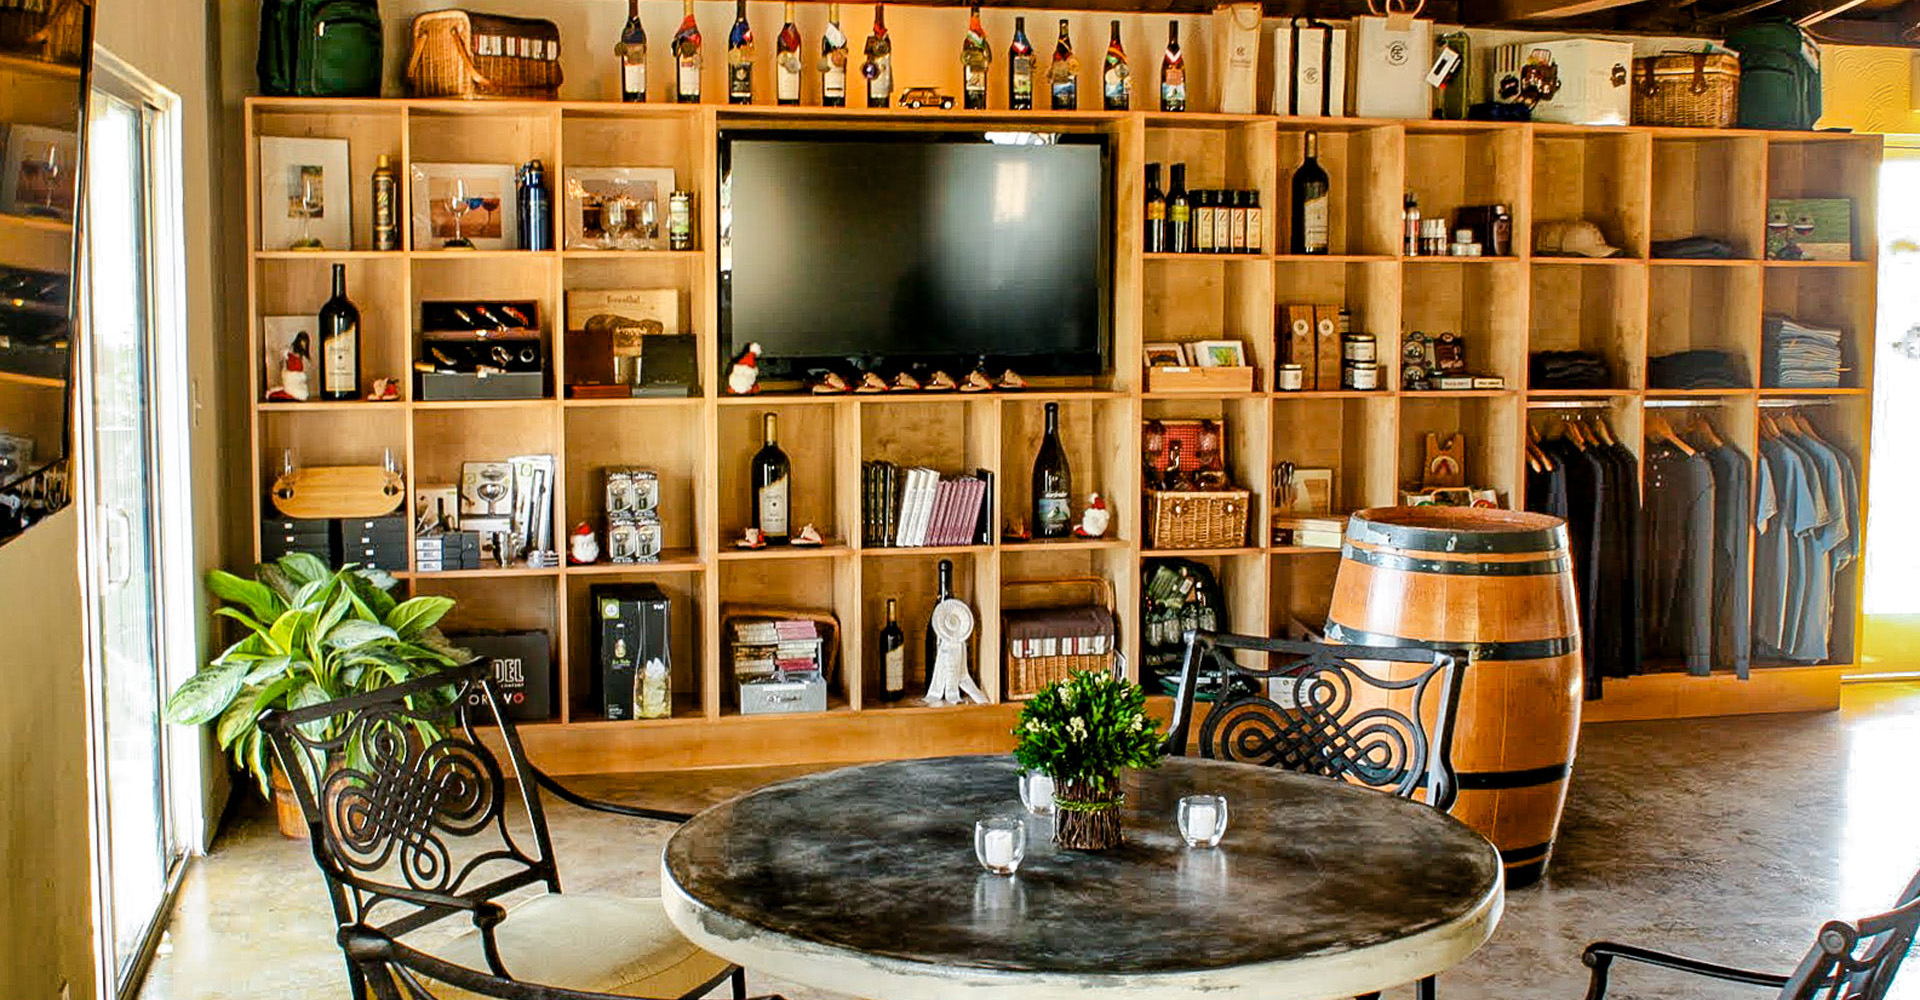 Interior decor of the tasting room